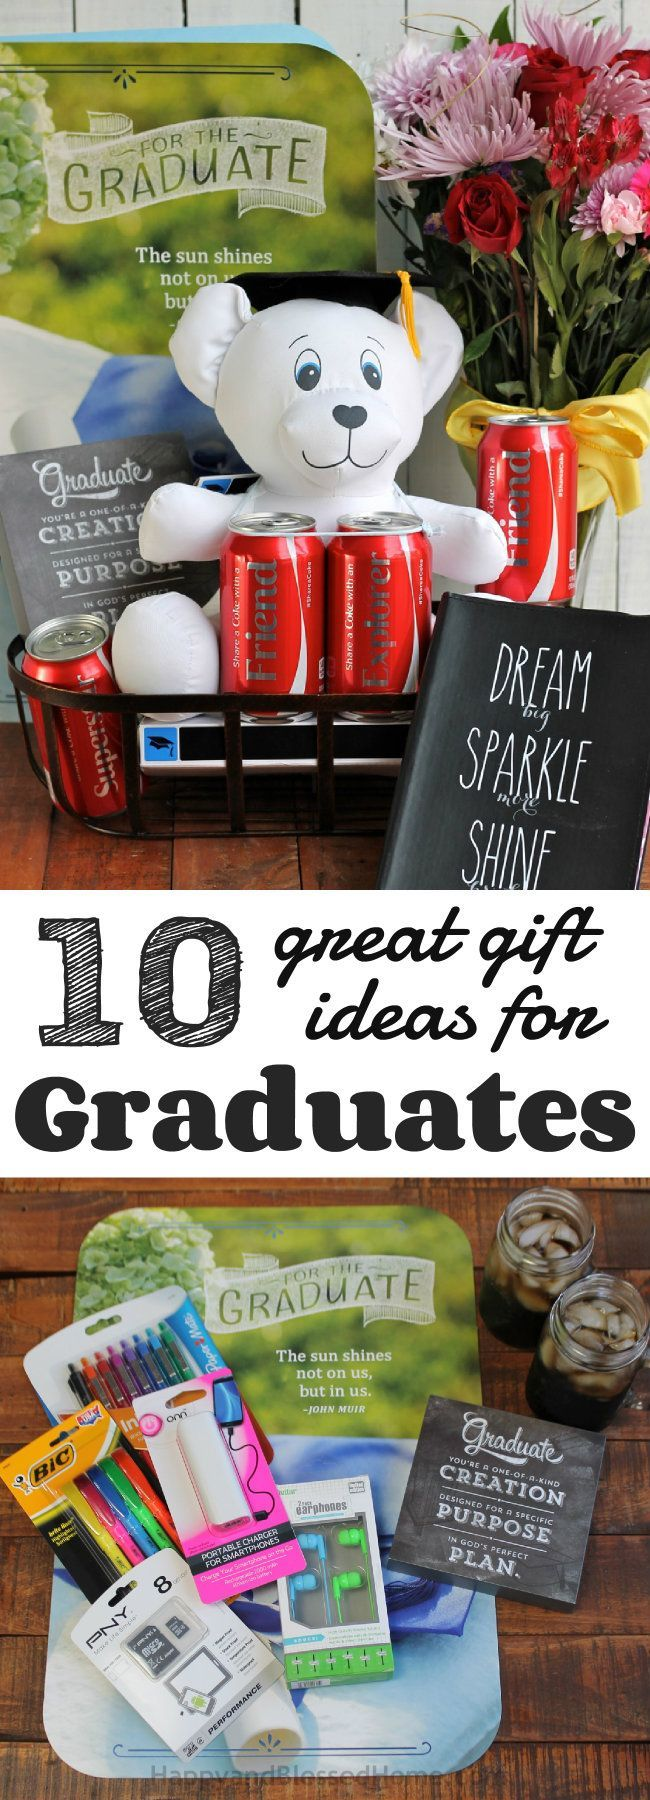 10 Great Gift Ideas For Graduates Personalized